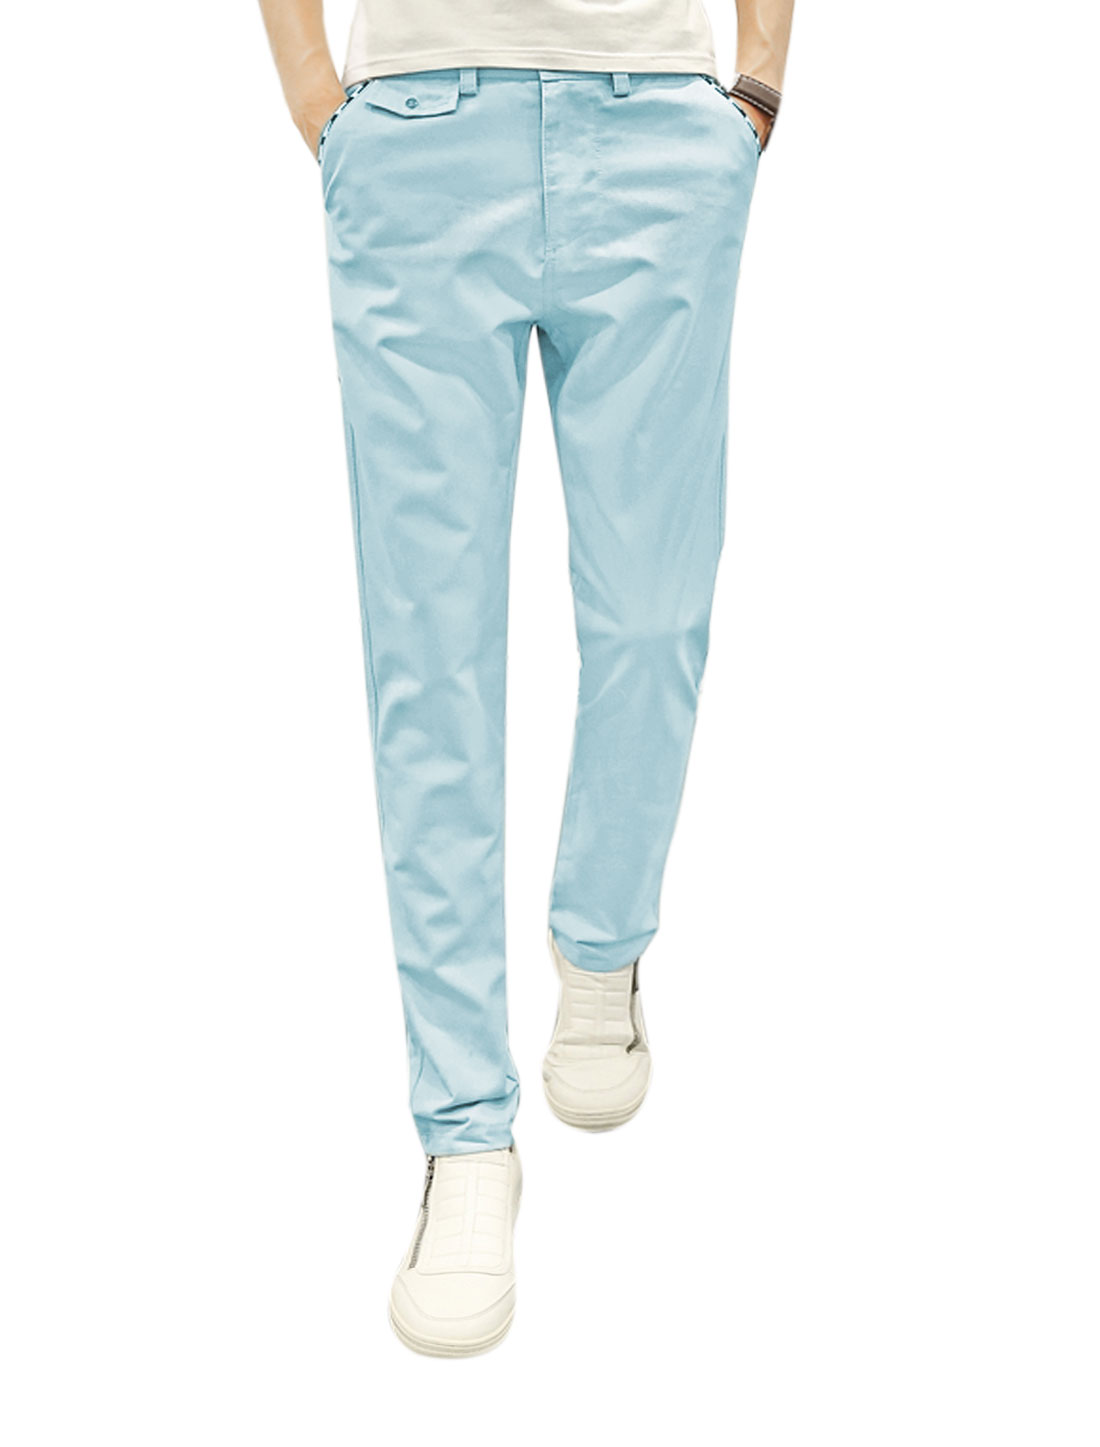 Men Natural Waist Casual Single Button Closed Zip Fly Pants Blue W32